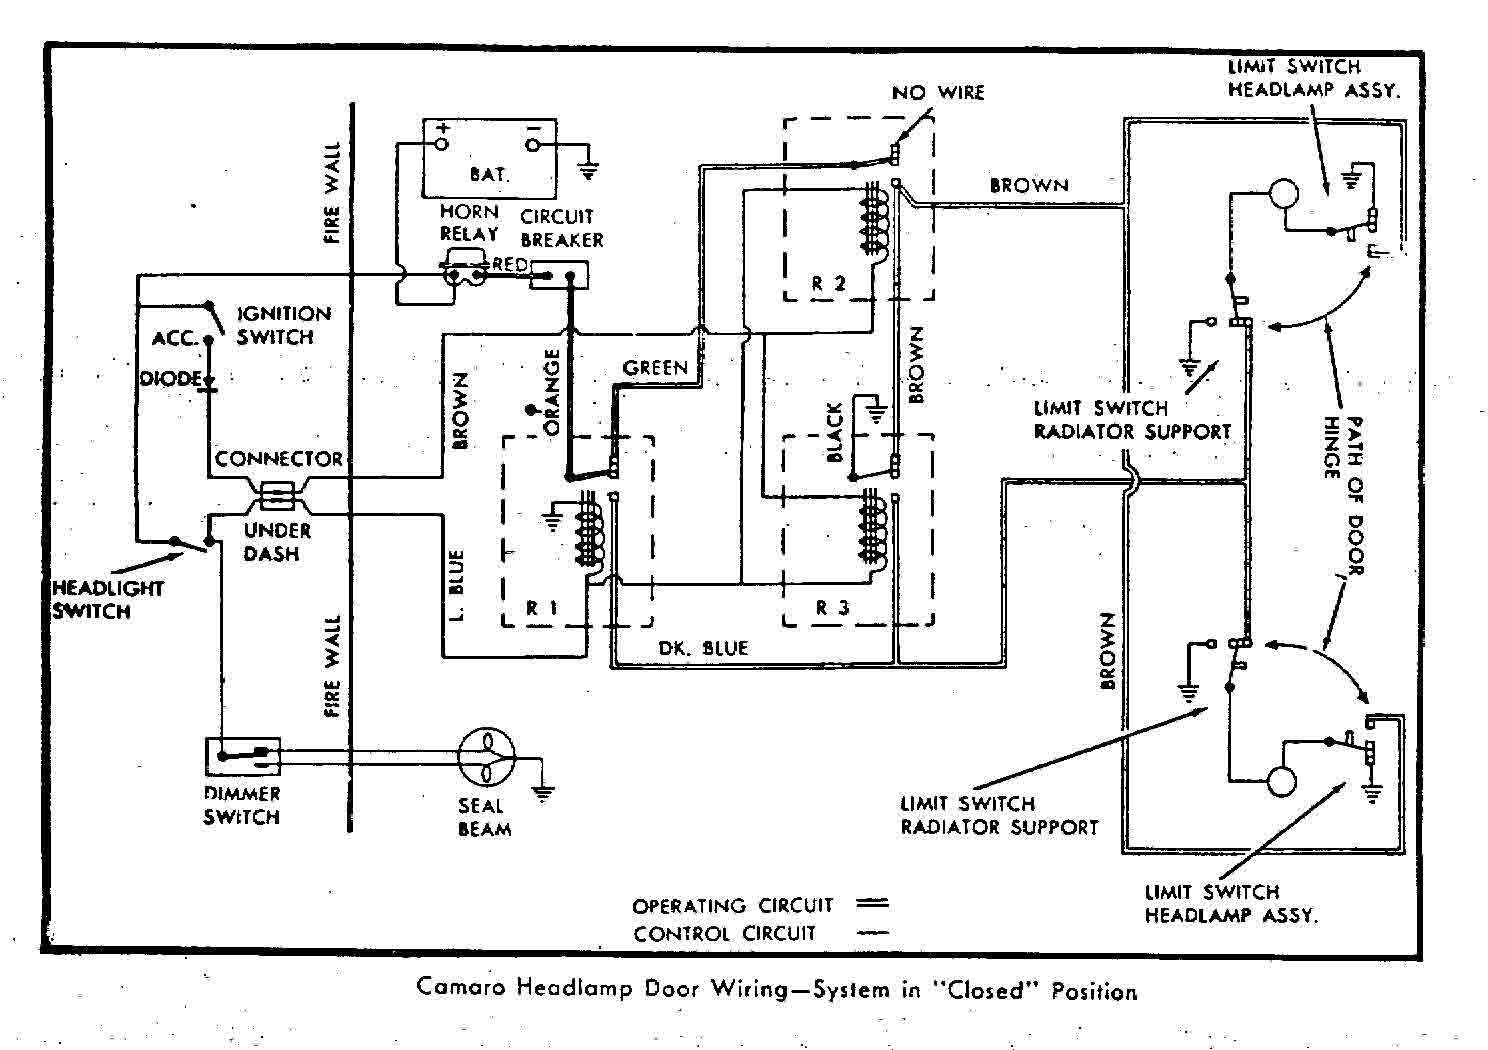 1969 Ford F100 Wiring Diagram Likewise 67 Camaro Ignition 69 Buick Rh Abetter Pw